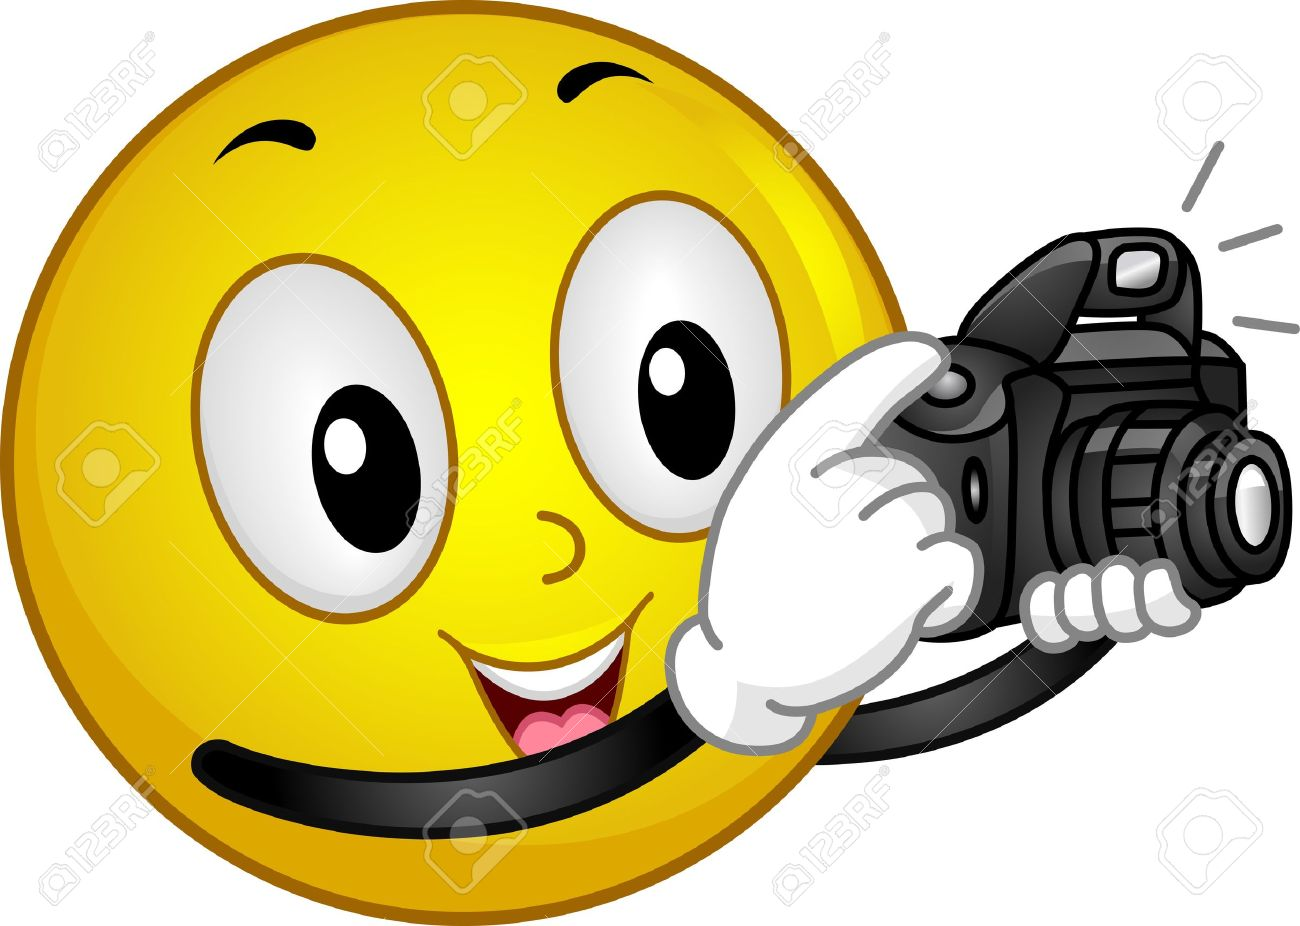 Illustration Of A Smiley Taking A Photo Stock Photo, Picture And ...